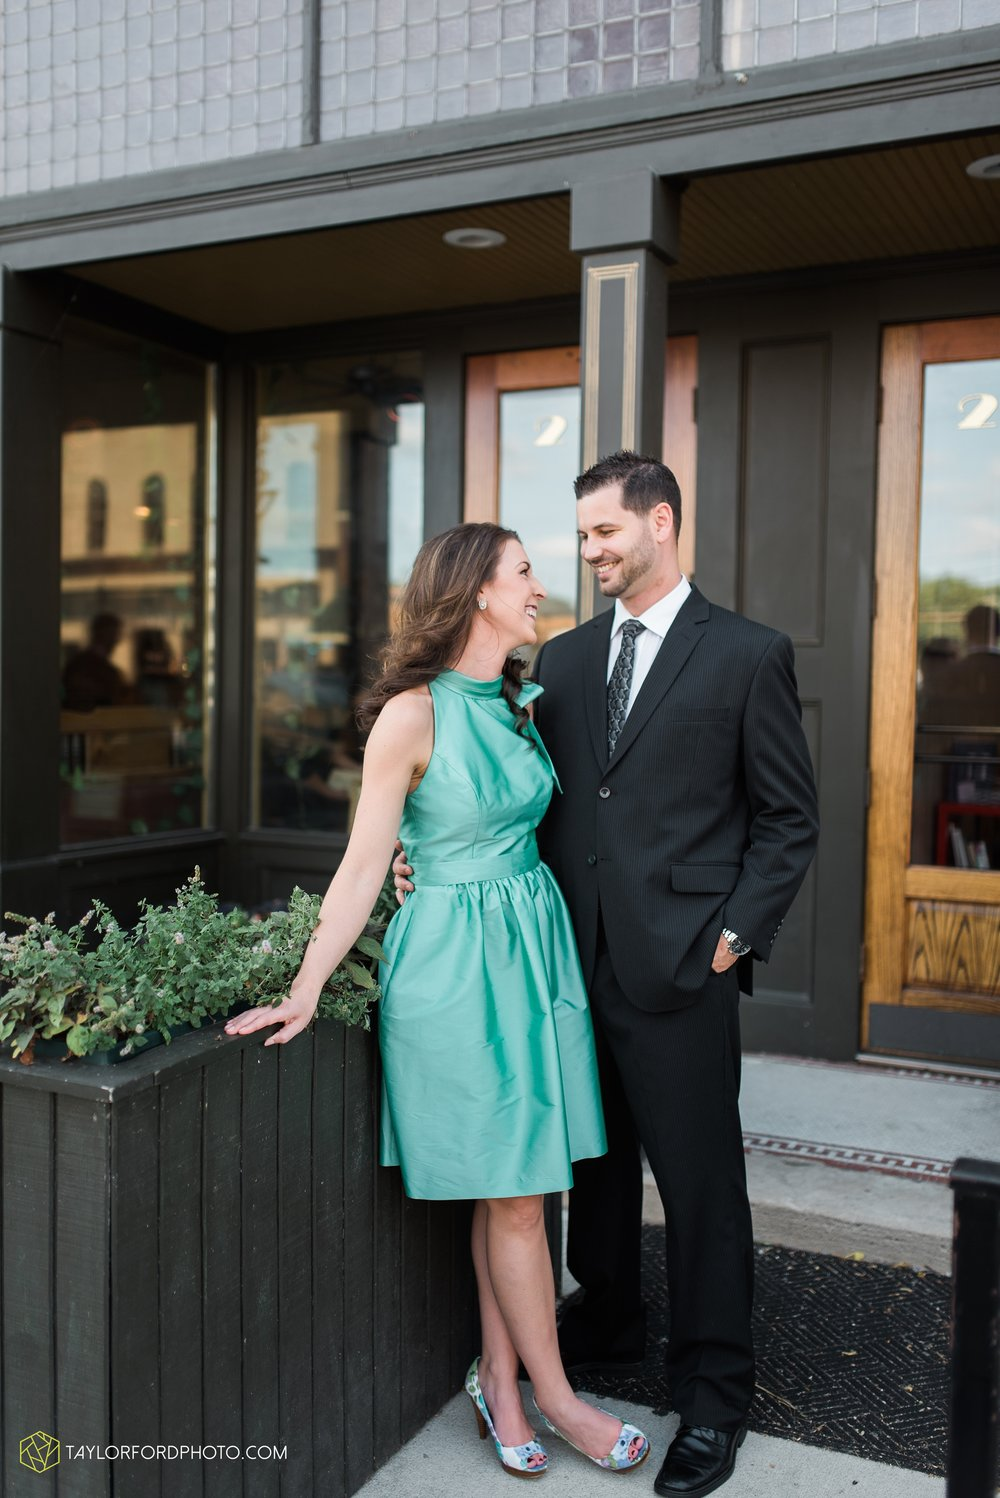 celina-coldwarter-ohio-engagement-wedding-photographer-Taylor-Ford-Photography-Ohio-Indiana_2274.jpg